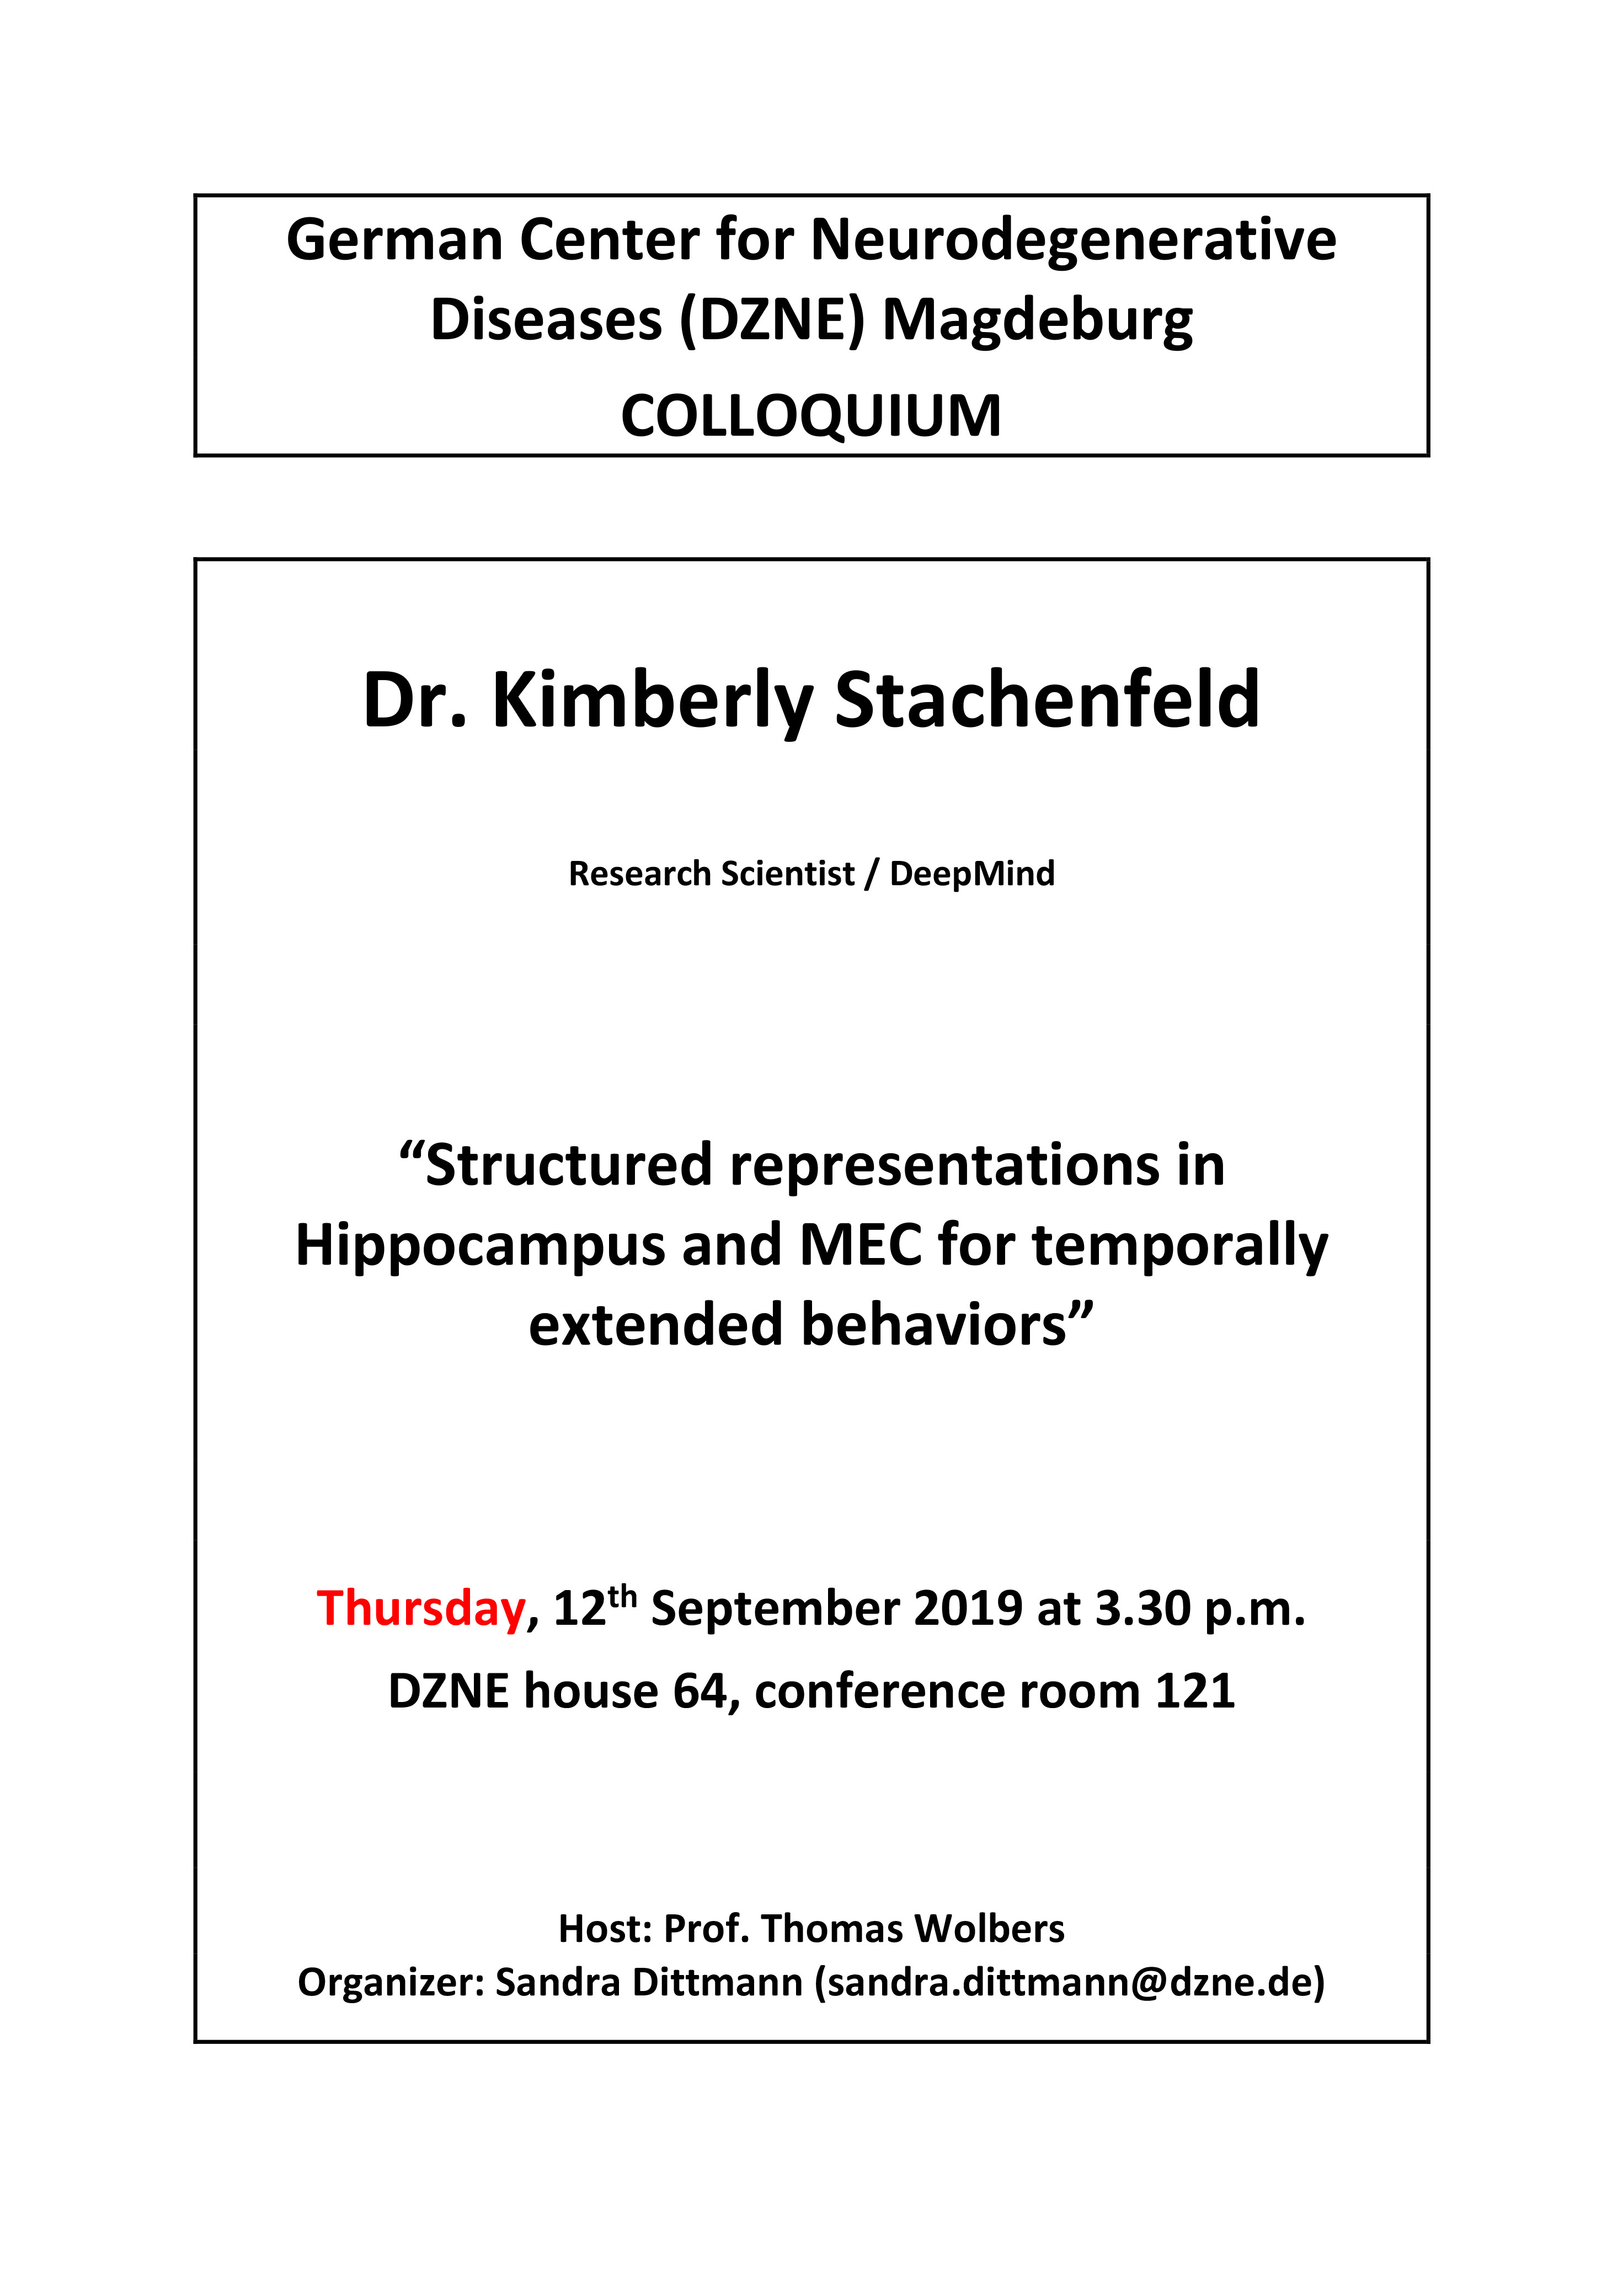 DZNE Colloquium: Structured representations in Hippocampus and MEC for temporally extended behaviors @ DZNE house 64, conference room 121